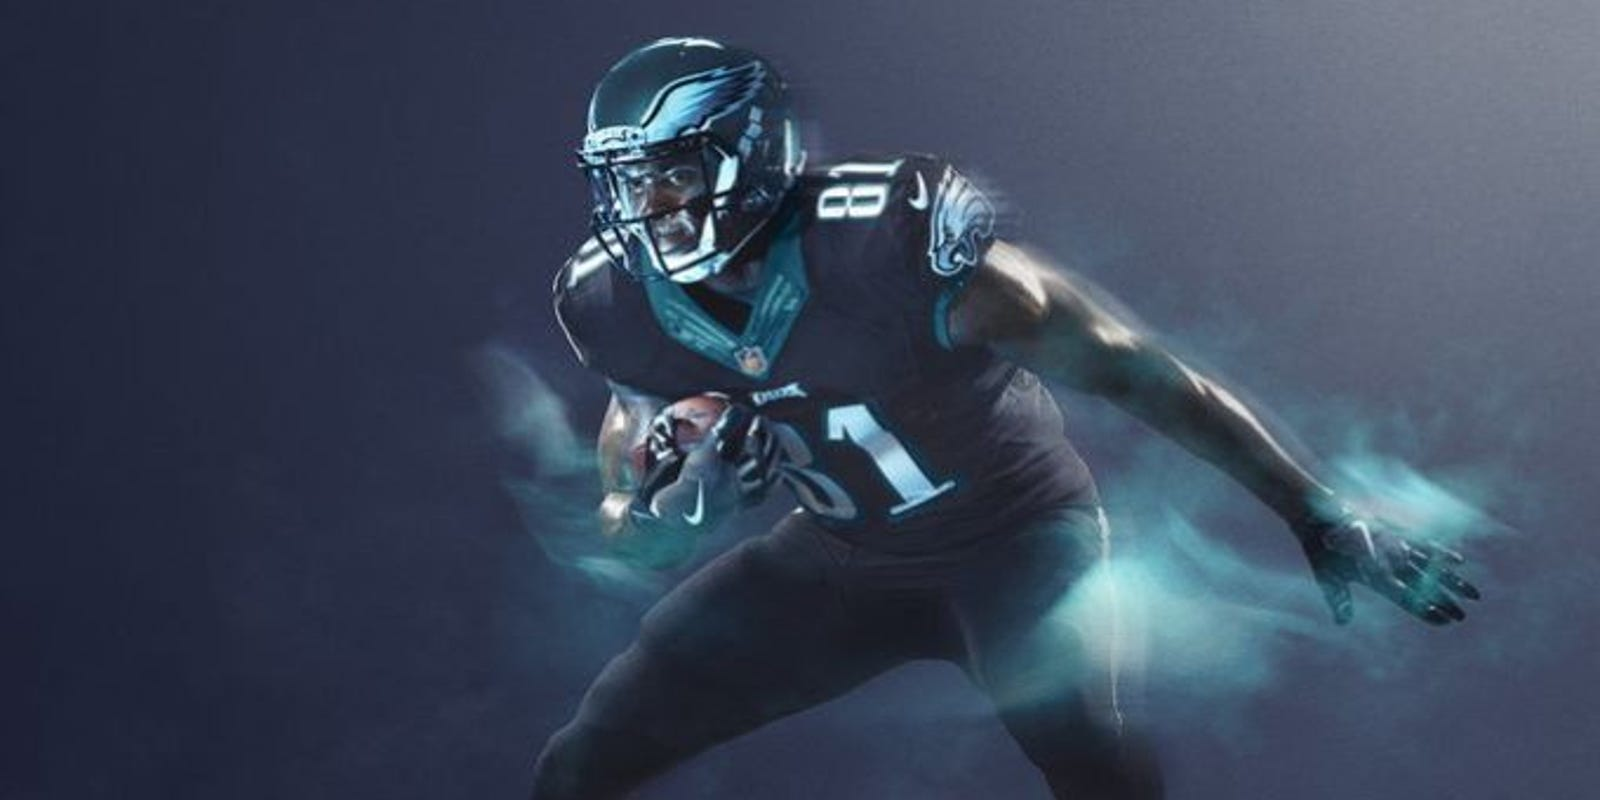 af99c02c70b NFL Color Rush uniforms  What teams wore on Thursday Night Football in 2016